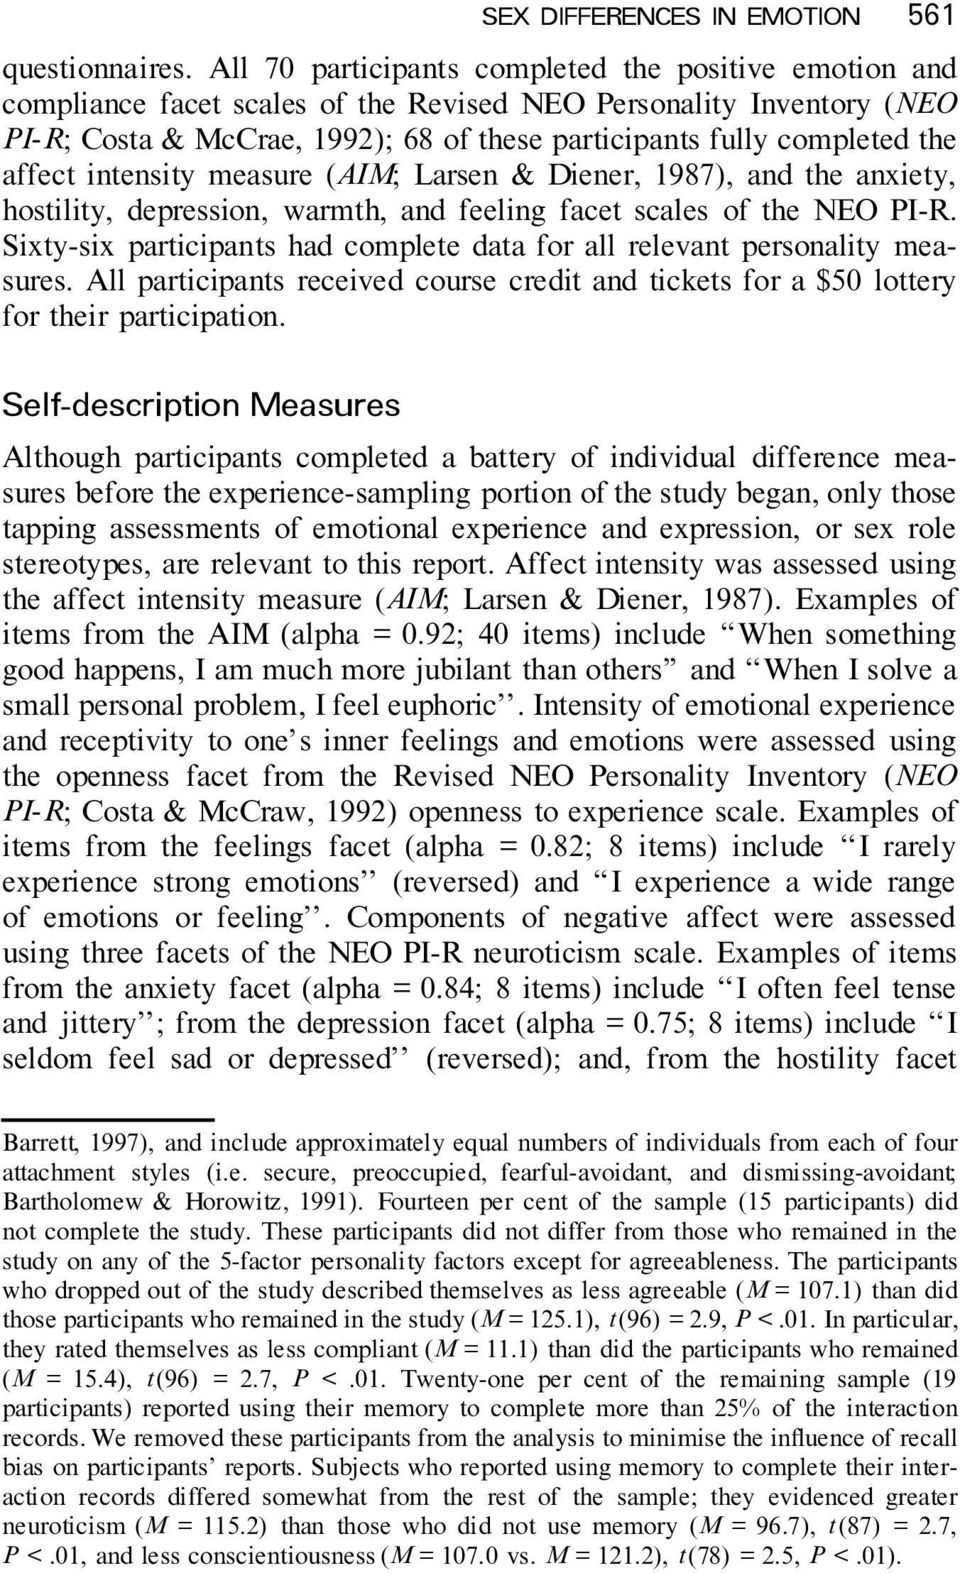 affect intensity measure (AIM; Larsen & Diener, 1987), and the anxiety, hostility, depression, warmth, and feeling facet scales of the NEO PI-R.